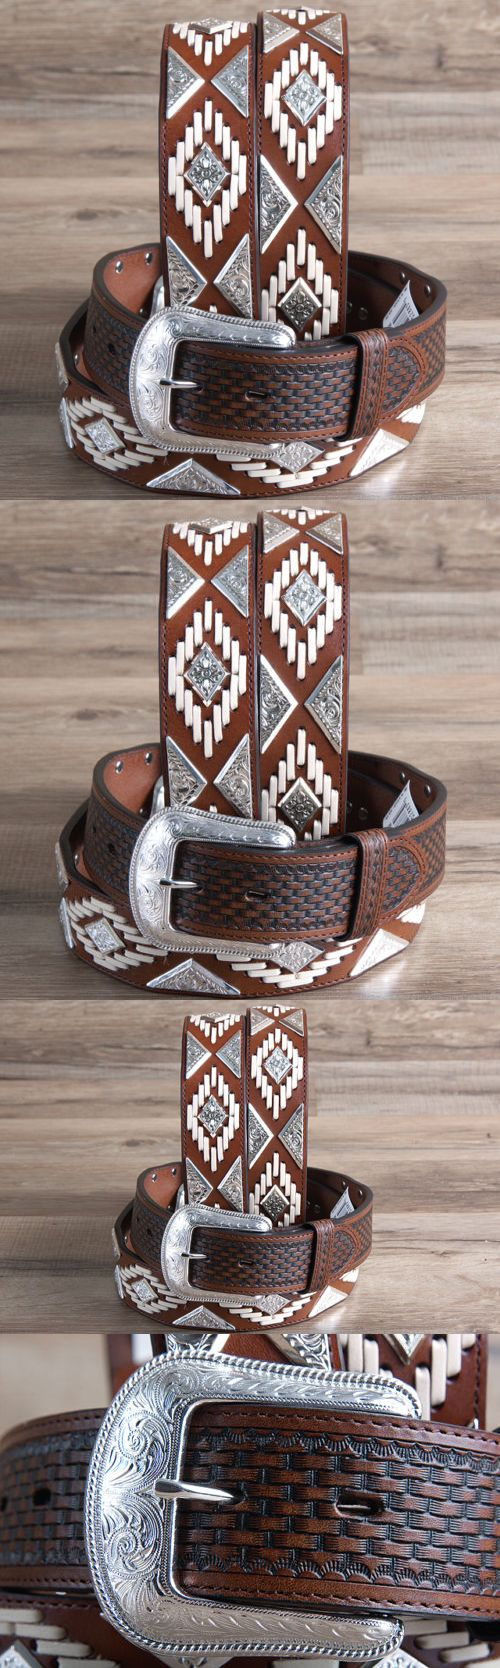 Baseball Belts 181334: 36 3D 1 1/2 Brown Mens Hand Tooled Western Leather Cowboy Fashion Belt -> BUY IT NOW ONLY: $89.99 on eBay!